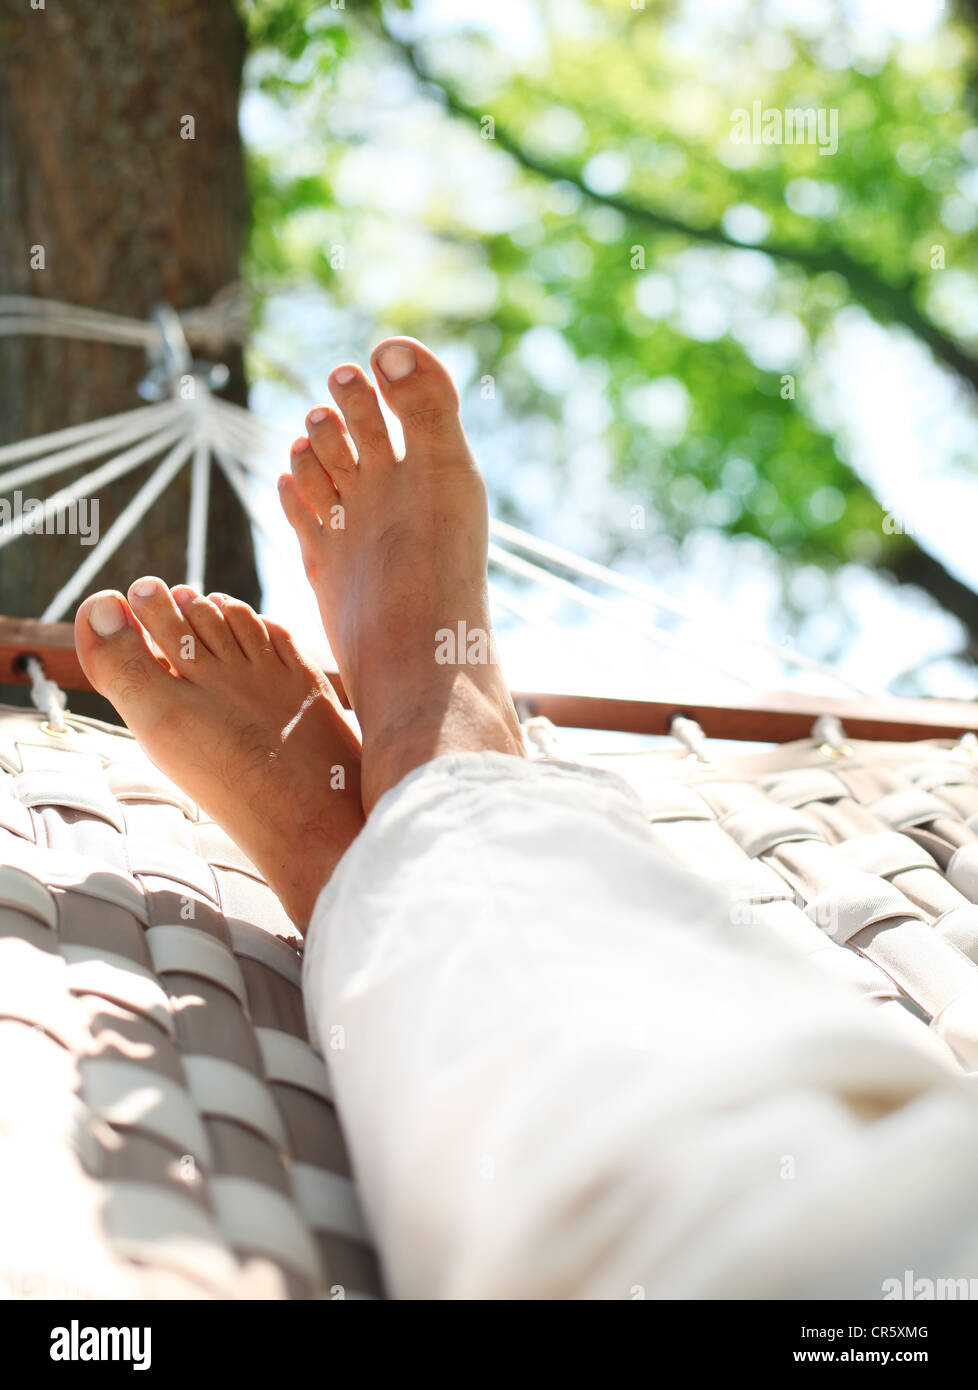 Feets in a hammock on a summer nature background. - Stock Image